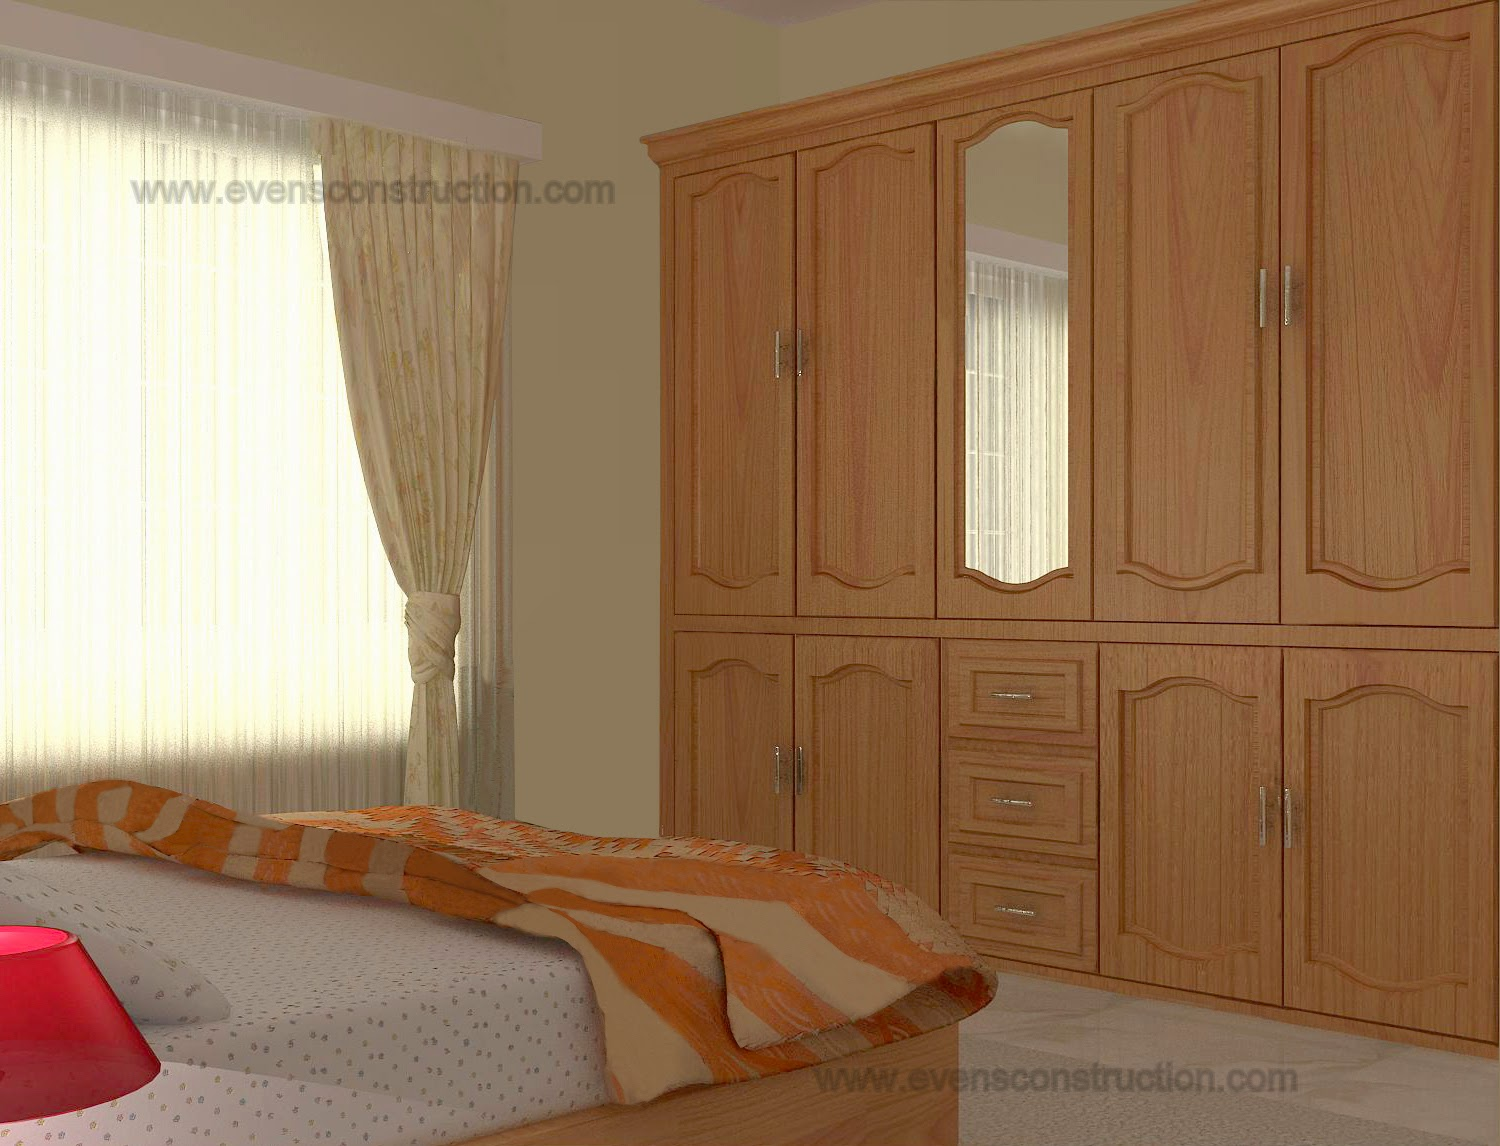 Evens construction pvt ltd kerala bedroom interior design for 4 door wardrobe interior designs